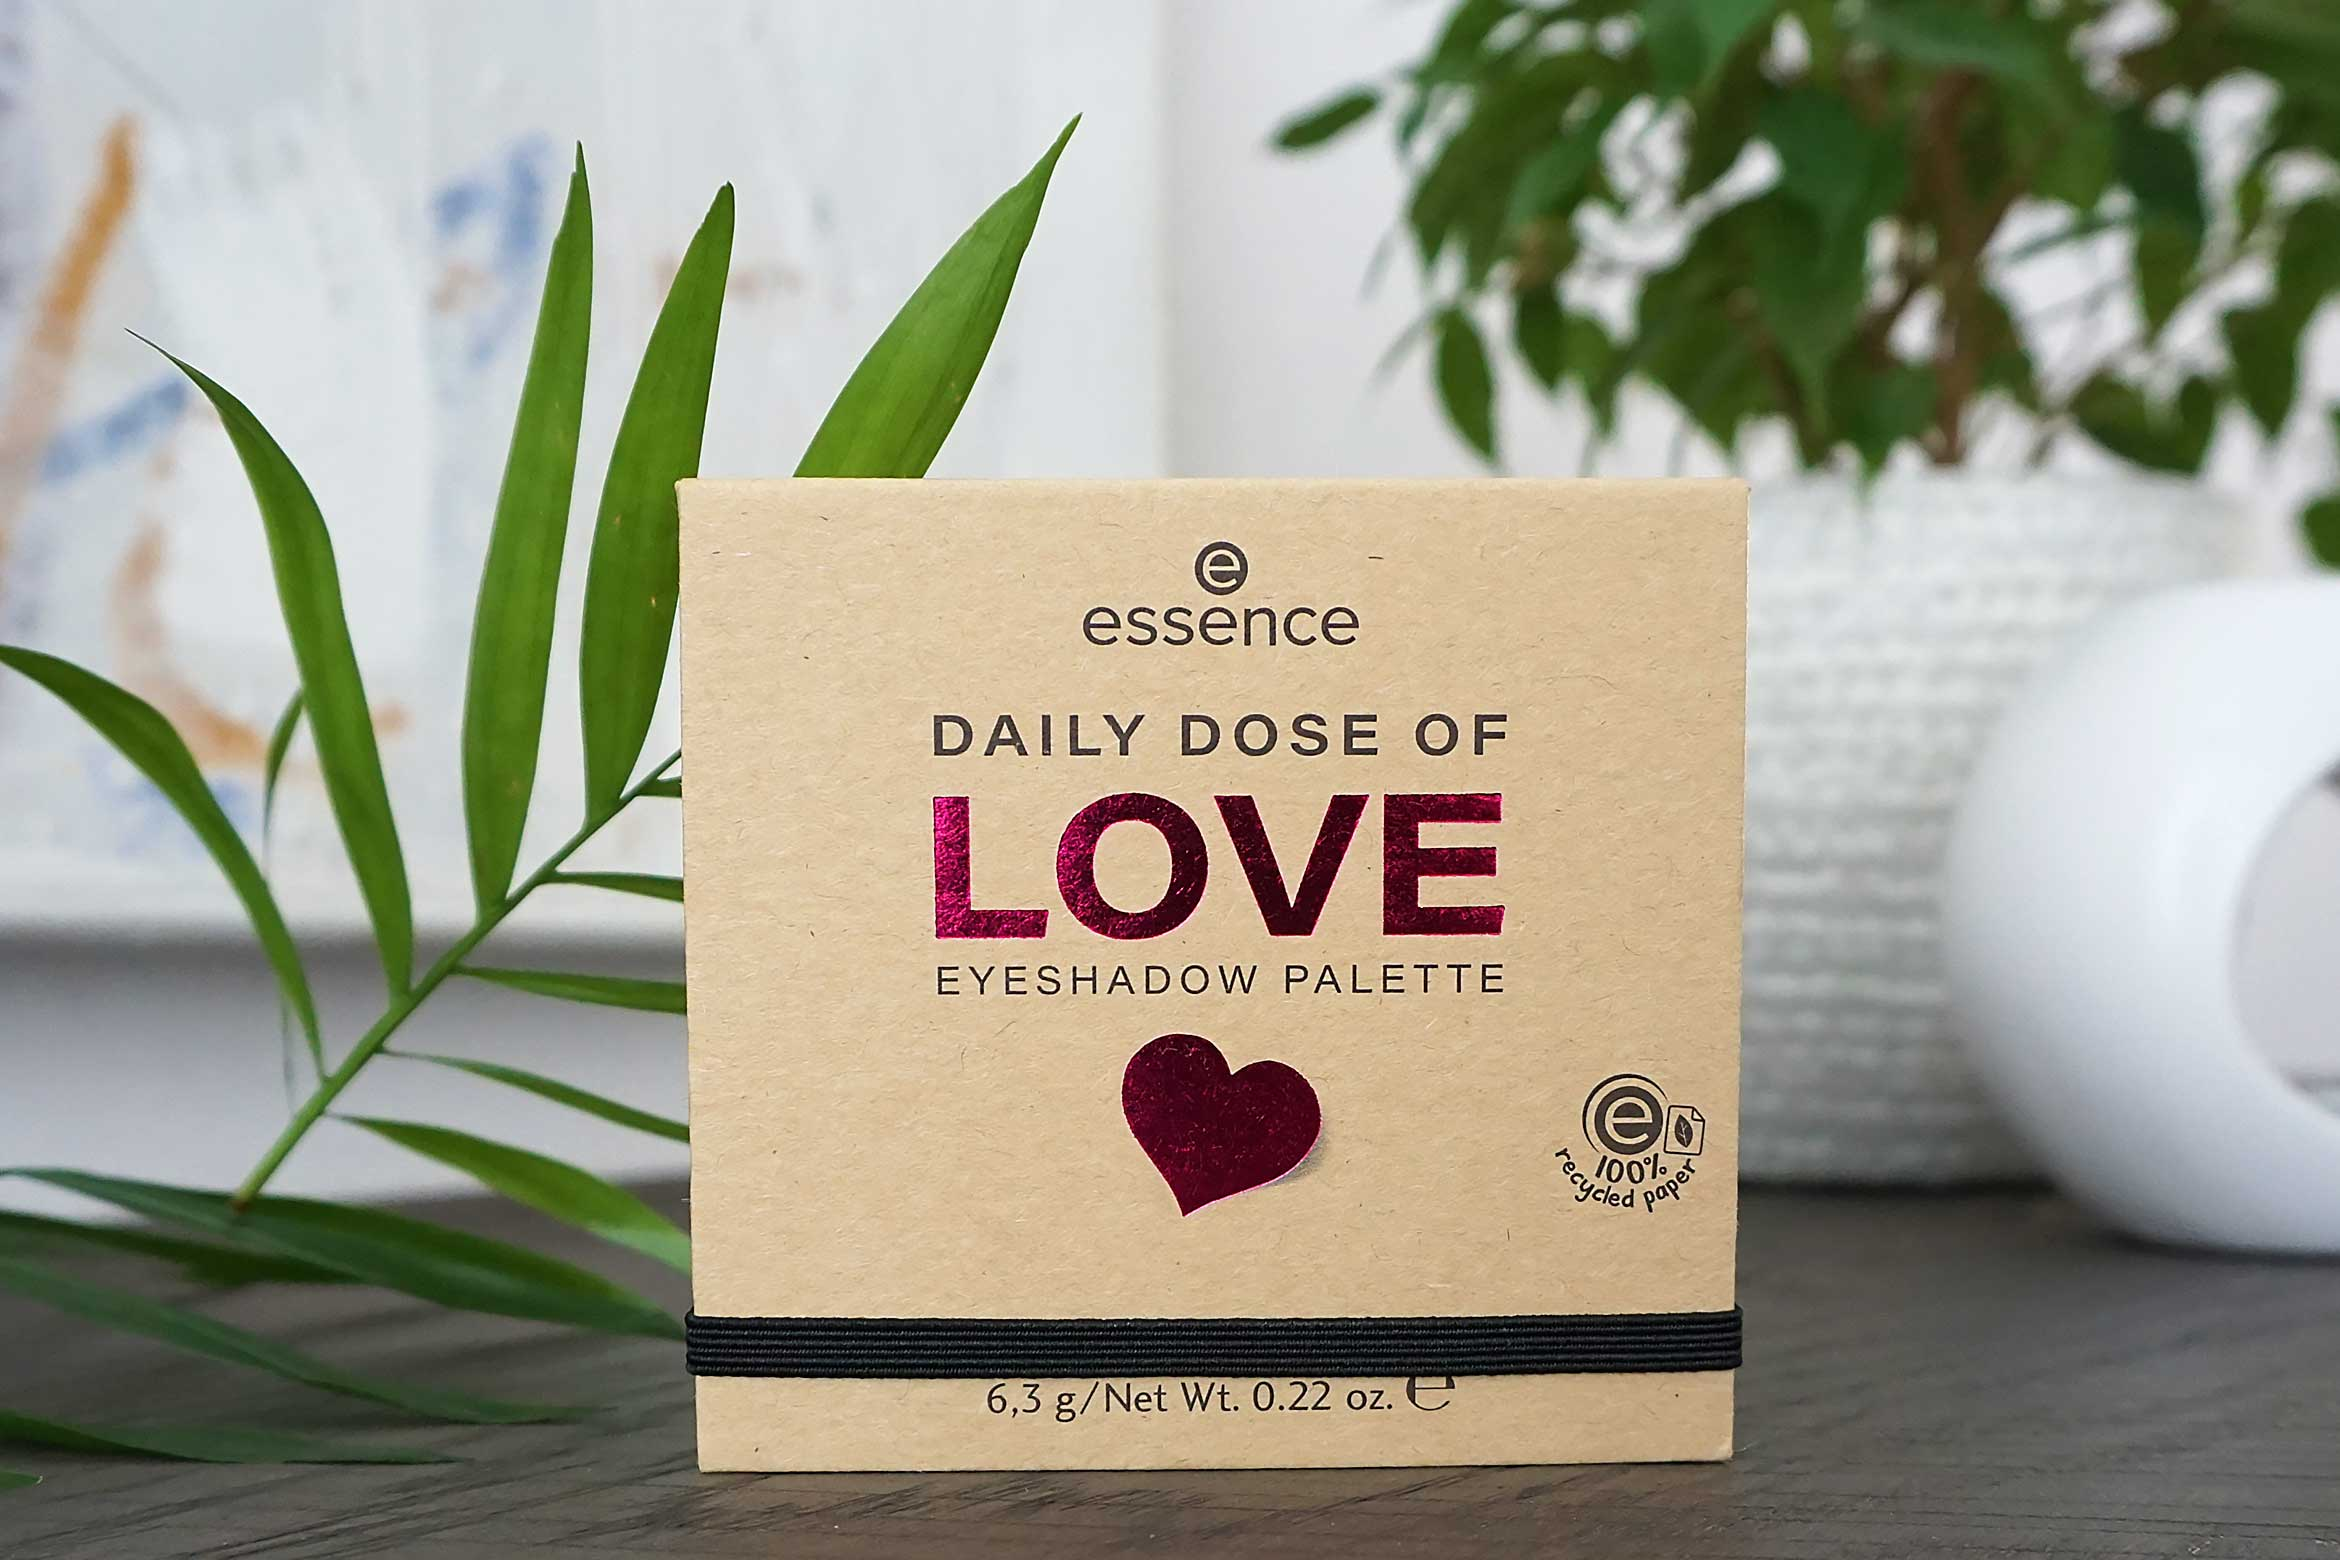 essence daily dose of love eyeshadow palette review